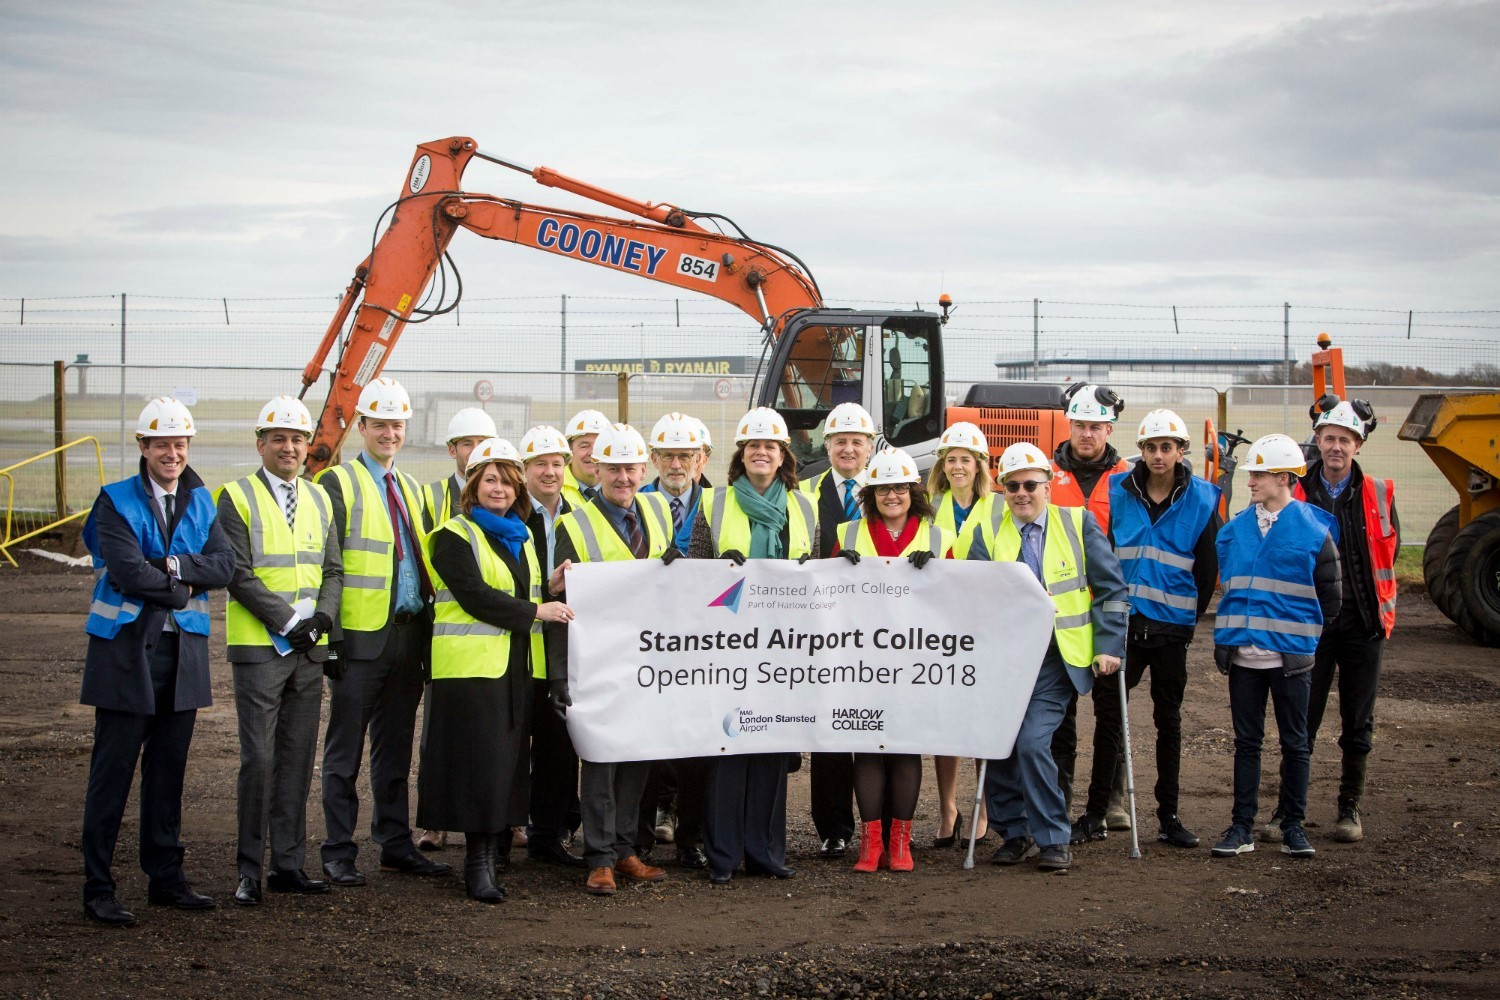 Developing future talent. The airport has teamed up with Harlow College and opened the UK's first aviation skills college in 2018.